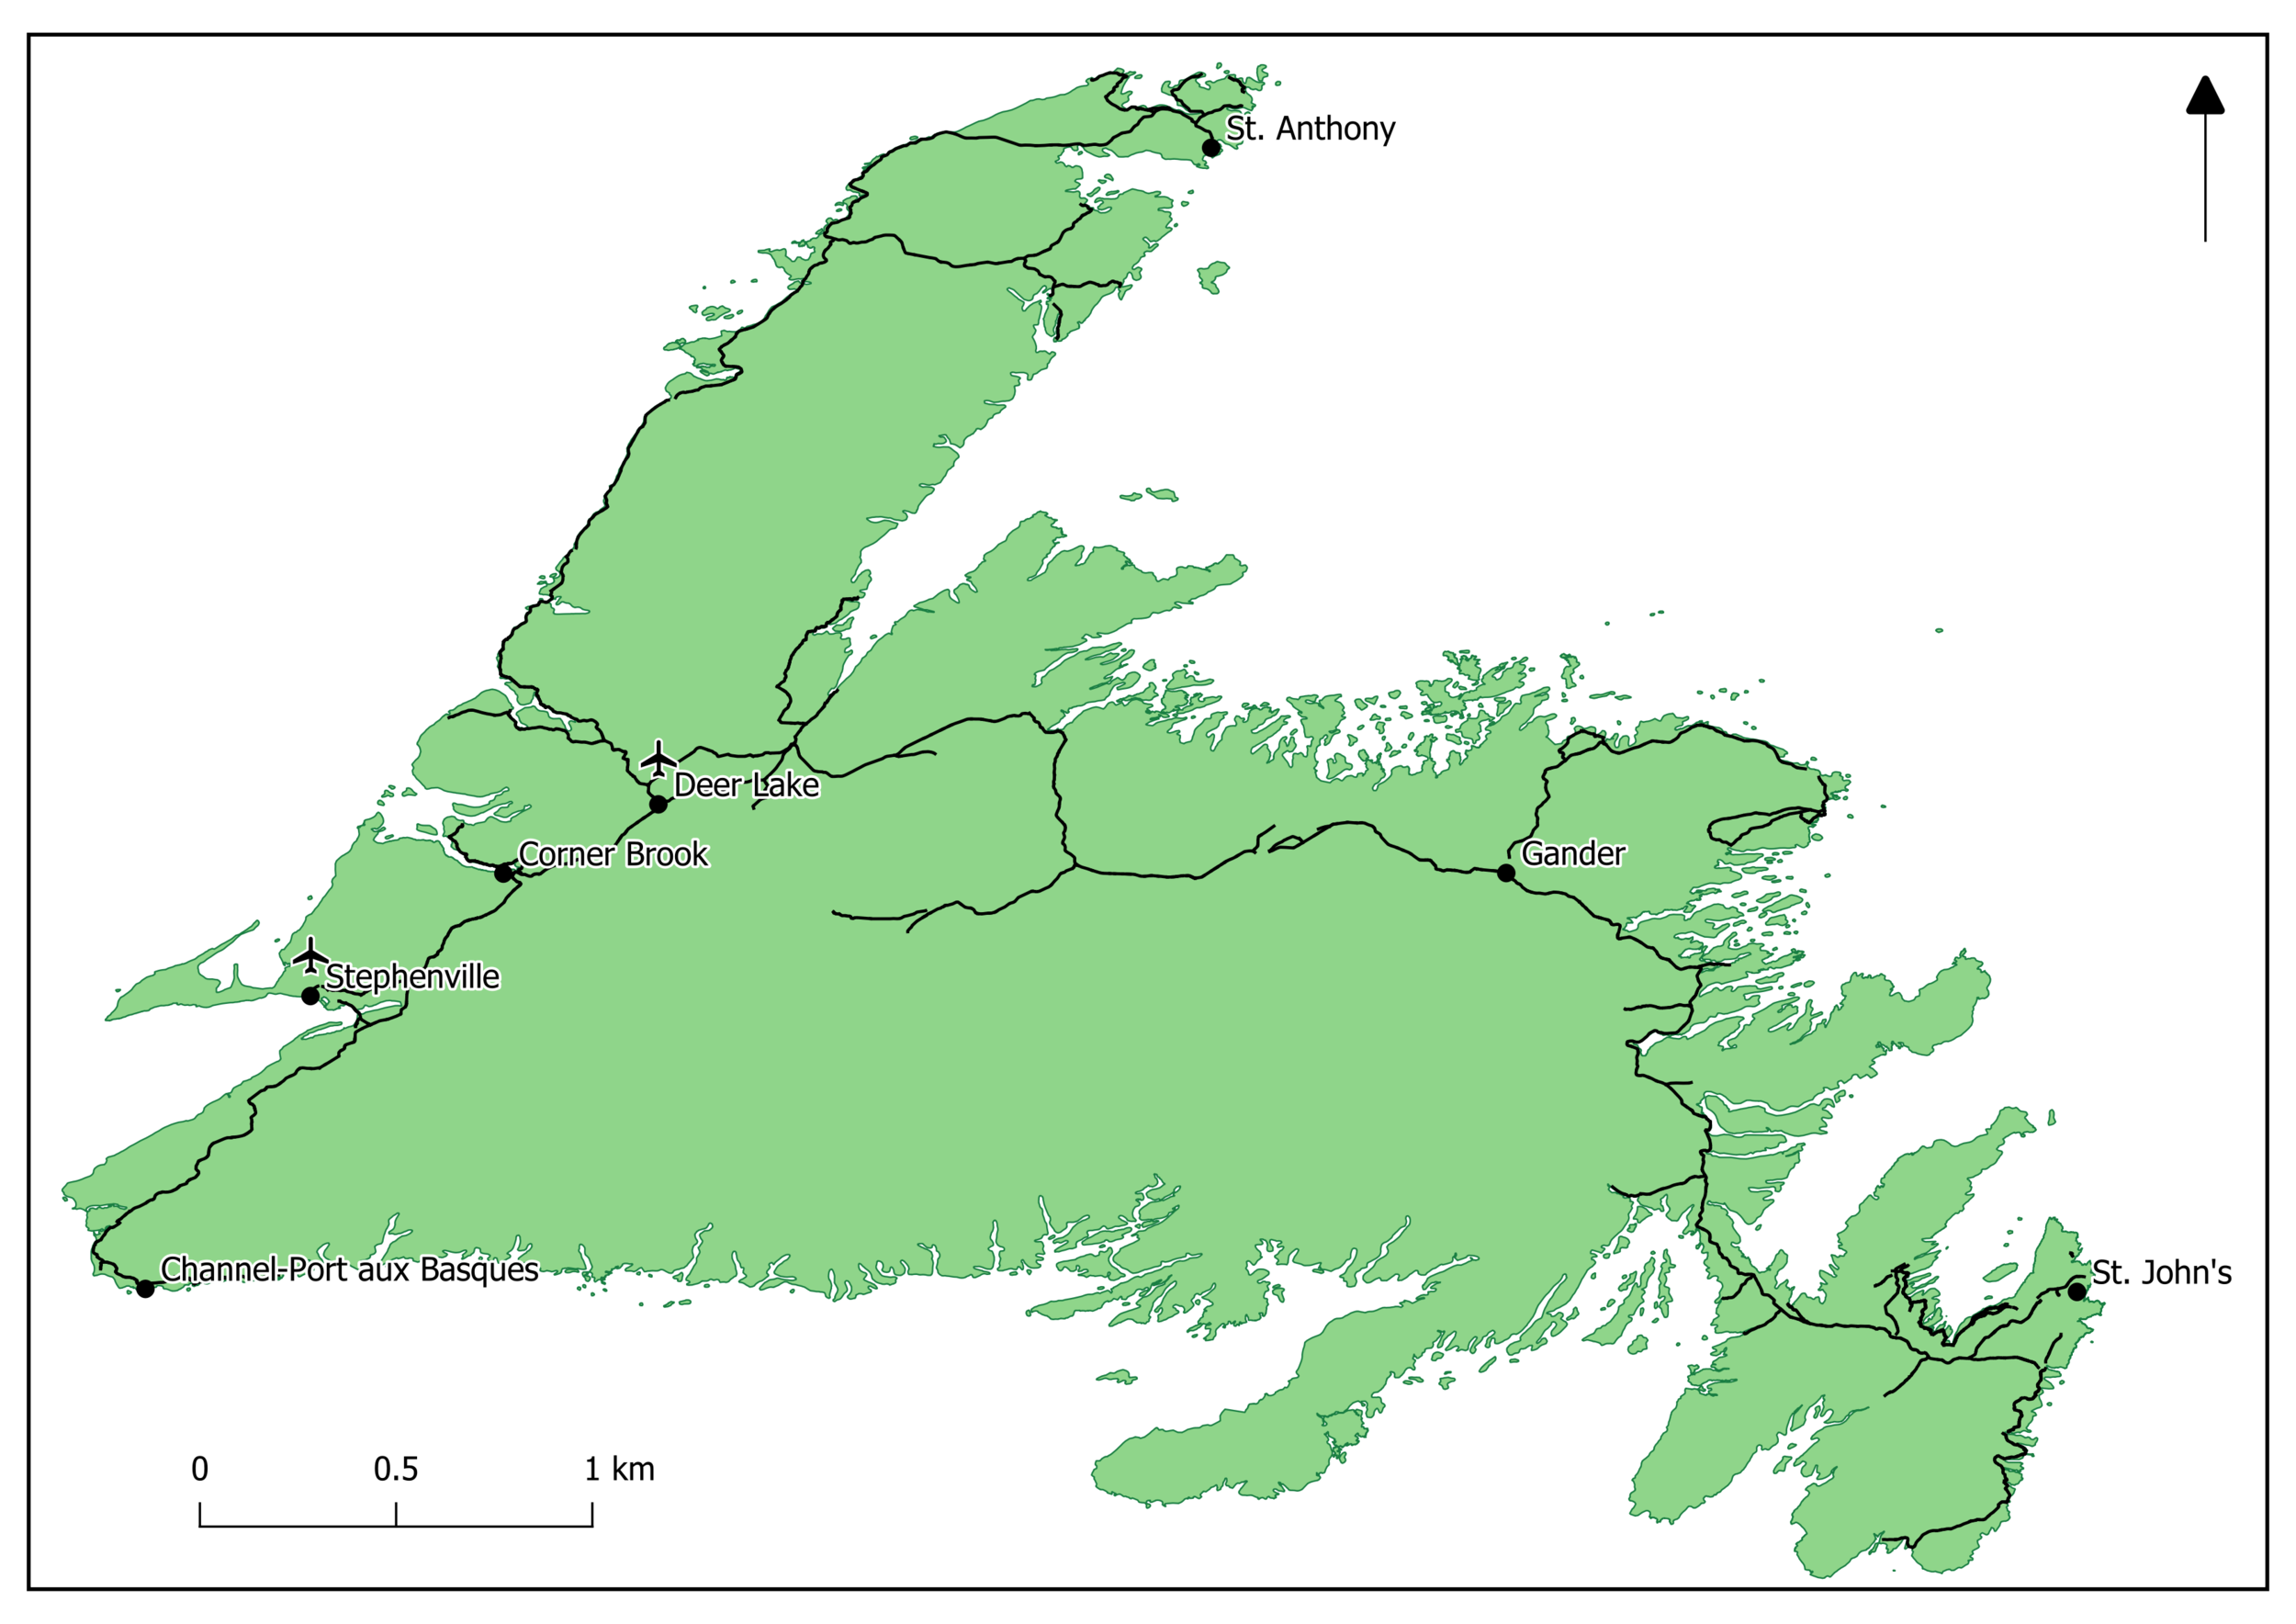 Locations of Western Newfoundland Airports and selected communities